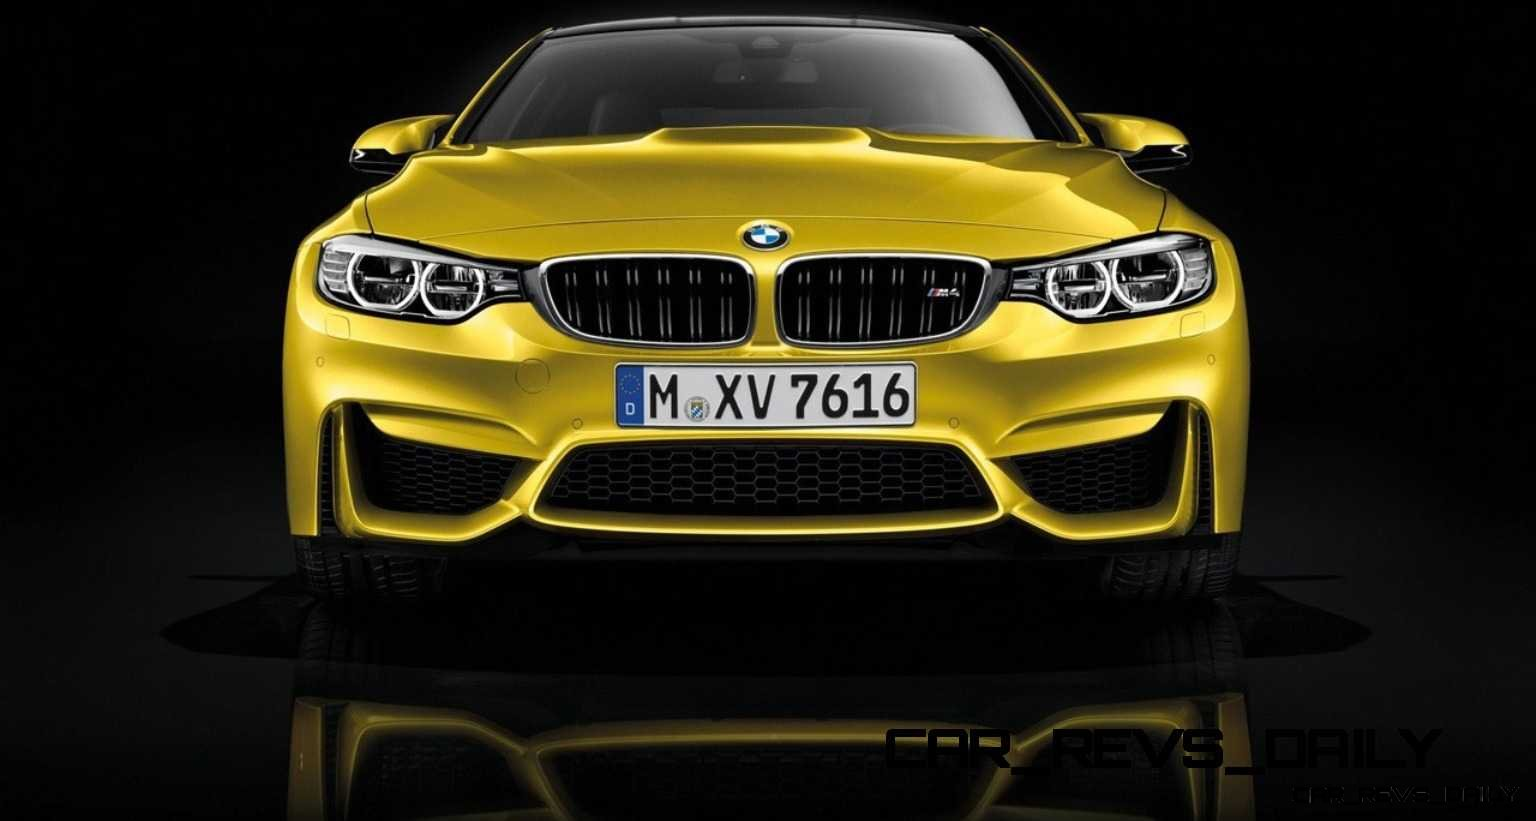 186mph 2014 BMW M4 Screams into Focus 19